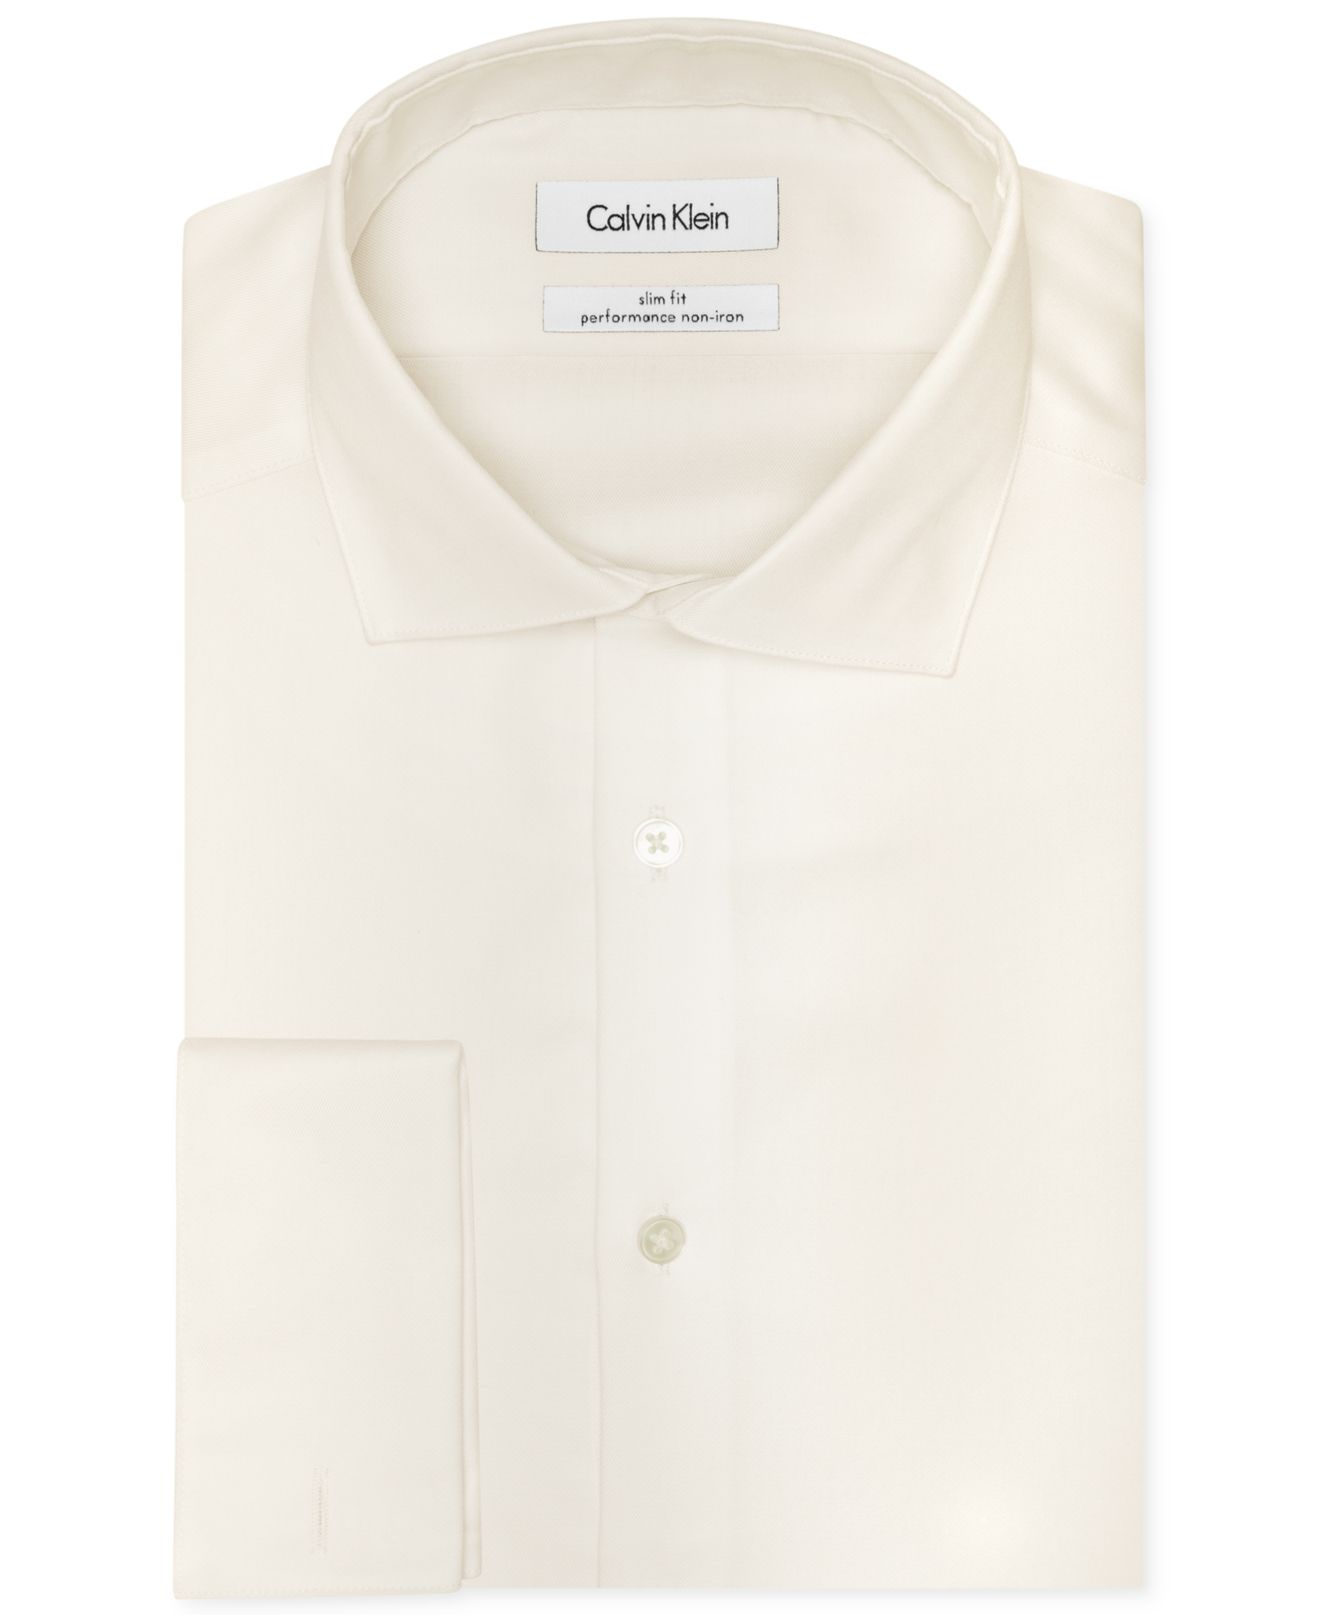 Calvin klein steel men 39 s slim fit non iron performance White french cuff shirt slim fit